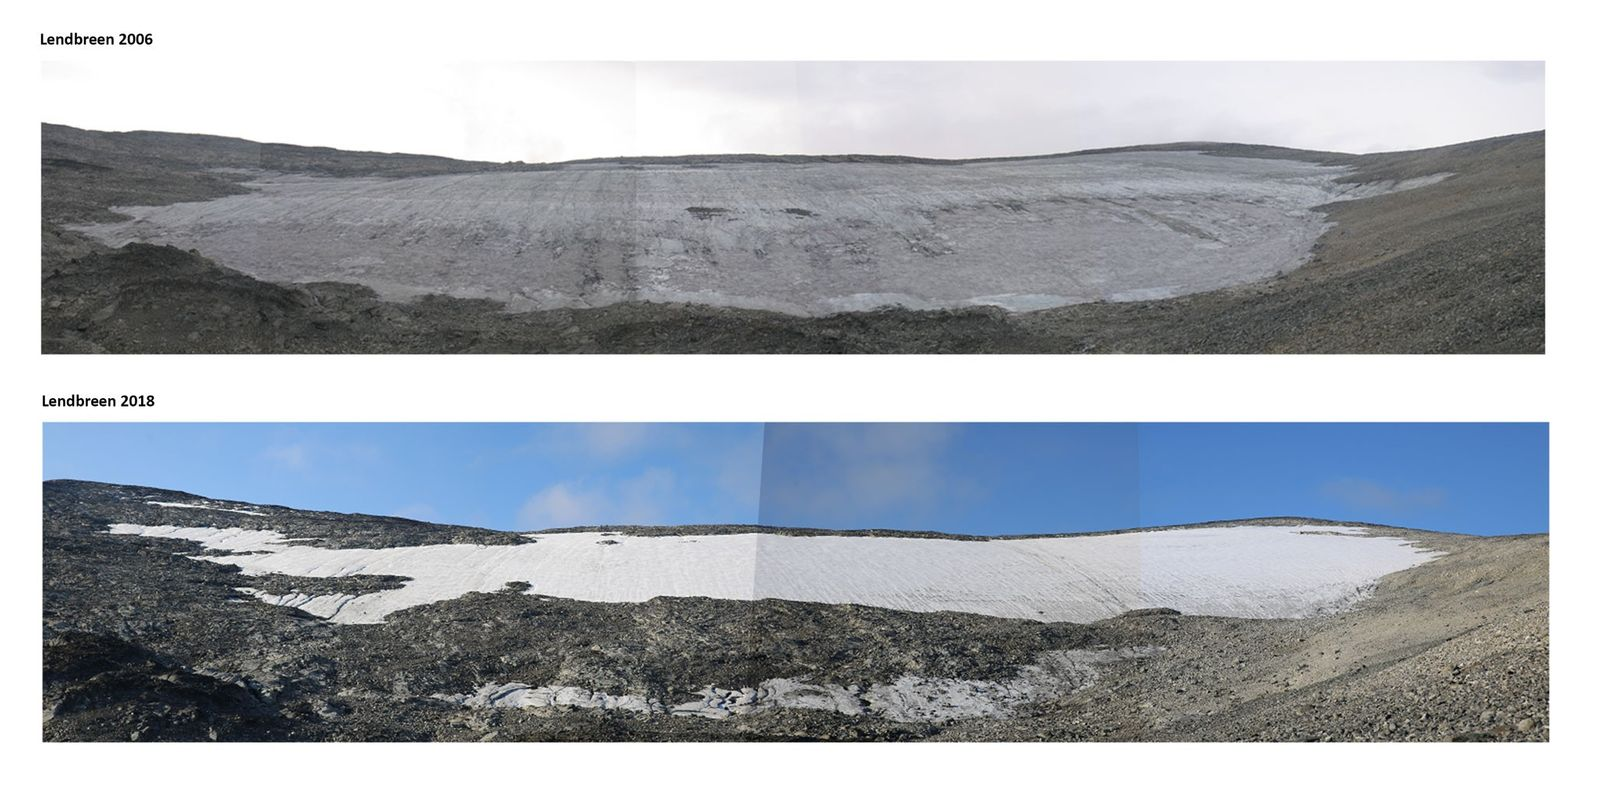 The Lendbreen ice patch is melting rapidy, as shown by photos taken in 2006 (above) and ...